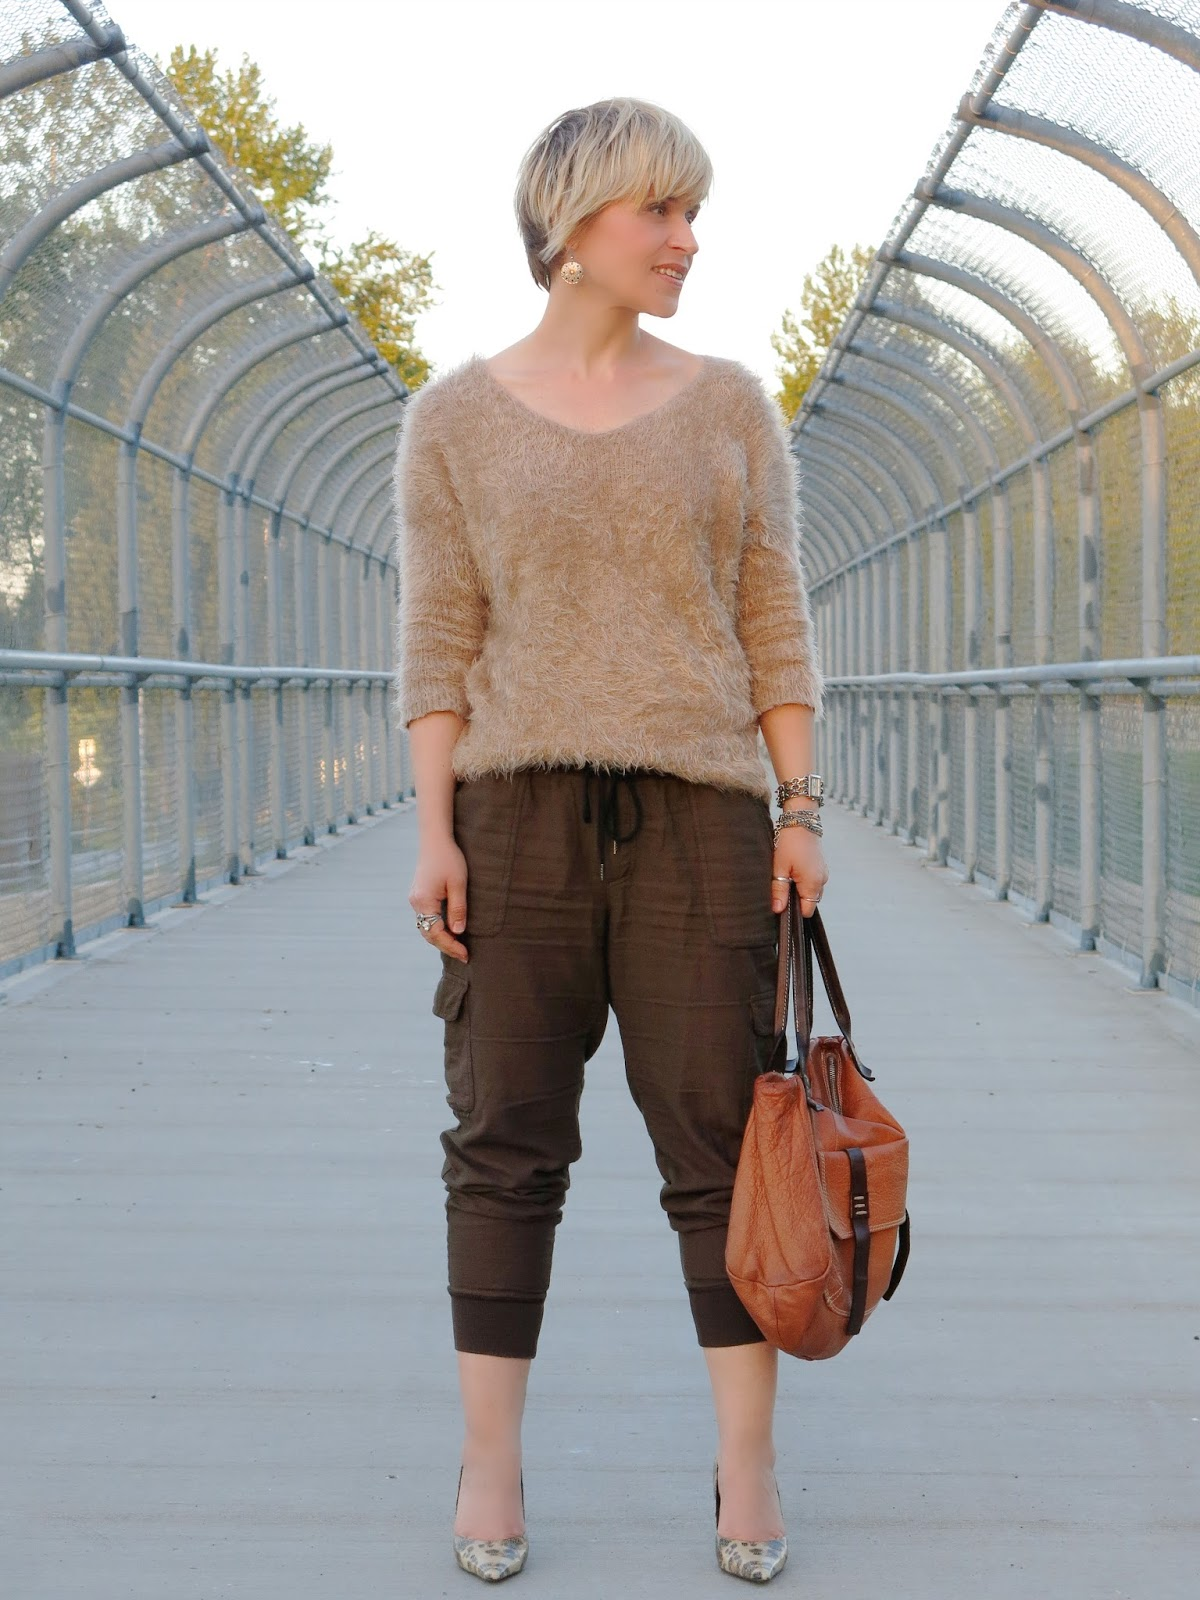 styling slouchy cargo pants with a fuzzy sweater and reptile-print pumps